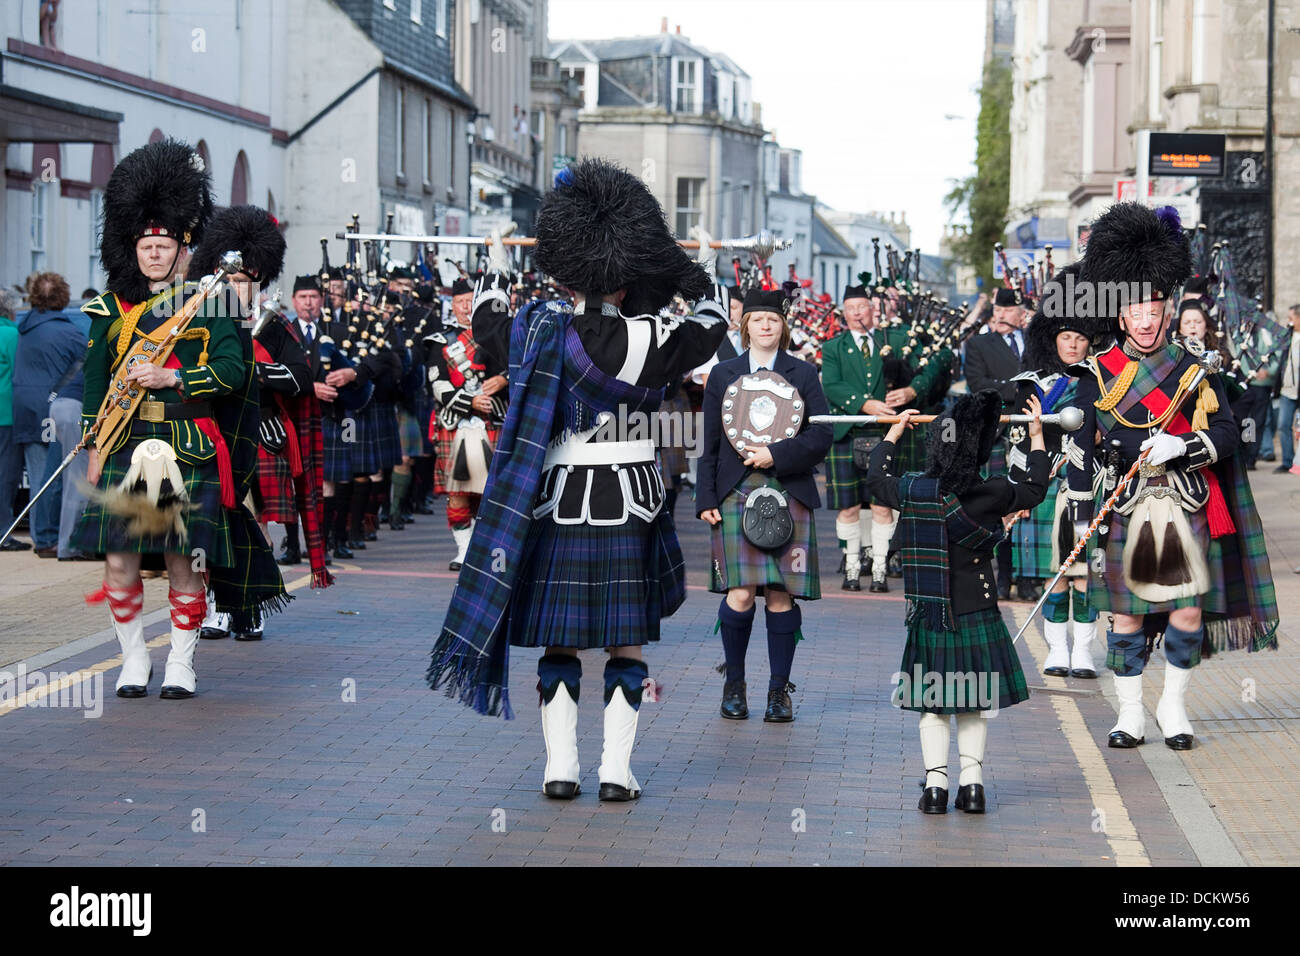 Nairn, Scotland - August 17th, 2013: Drum Majors leading their marching bands through the high street in Nairn. - Stock Image